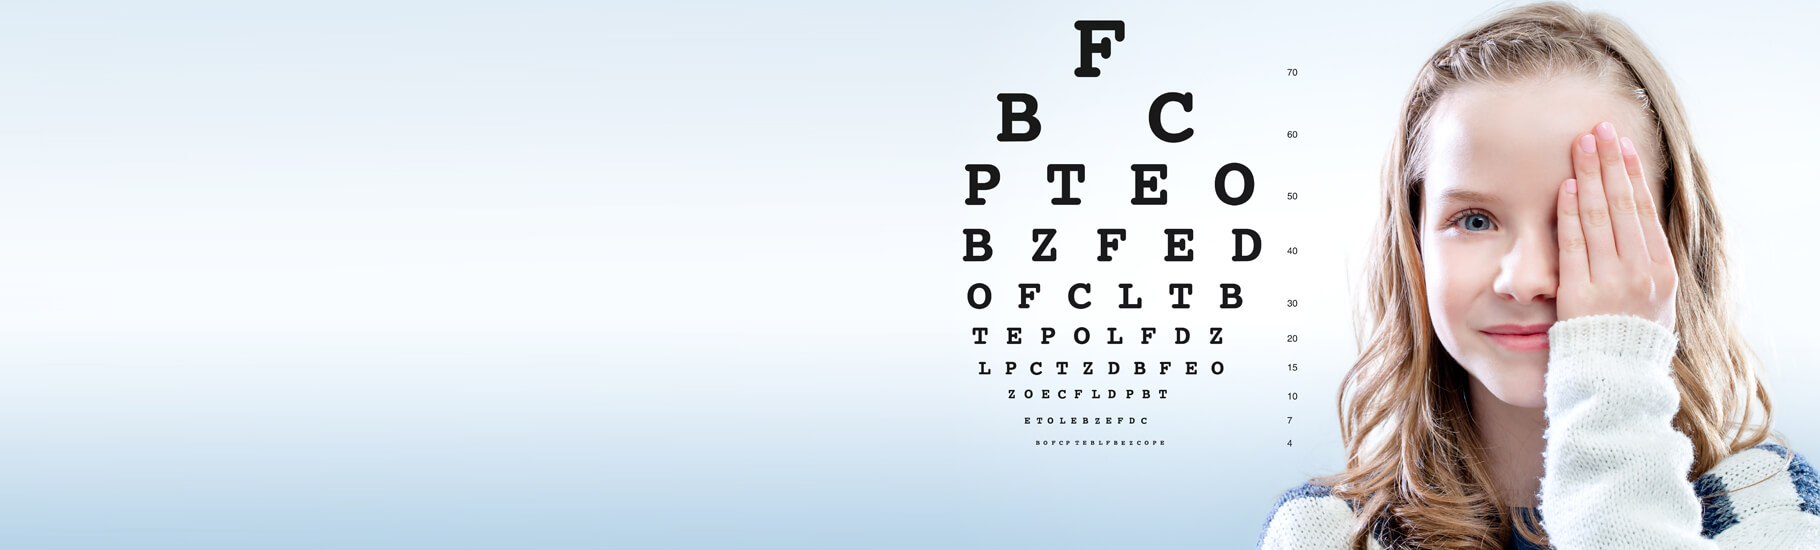 You-girl-eye-test